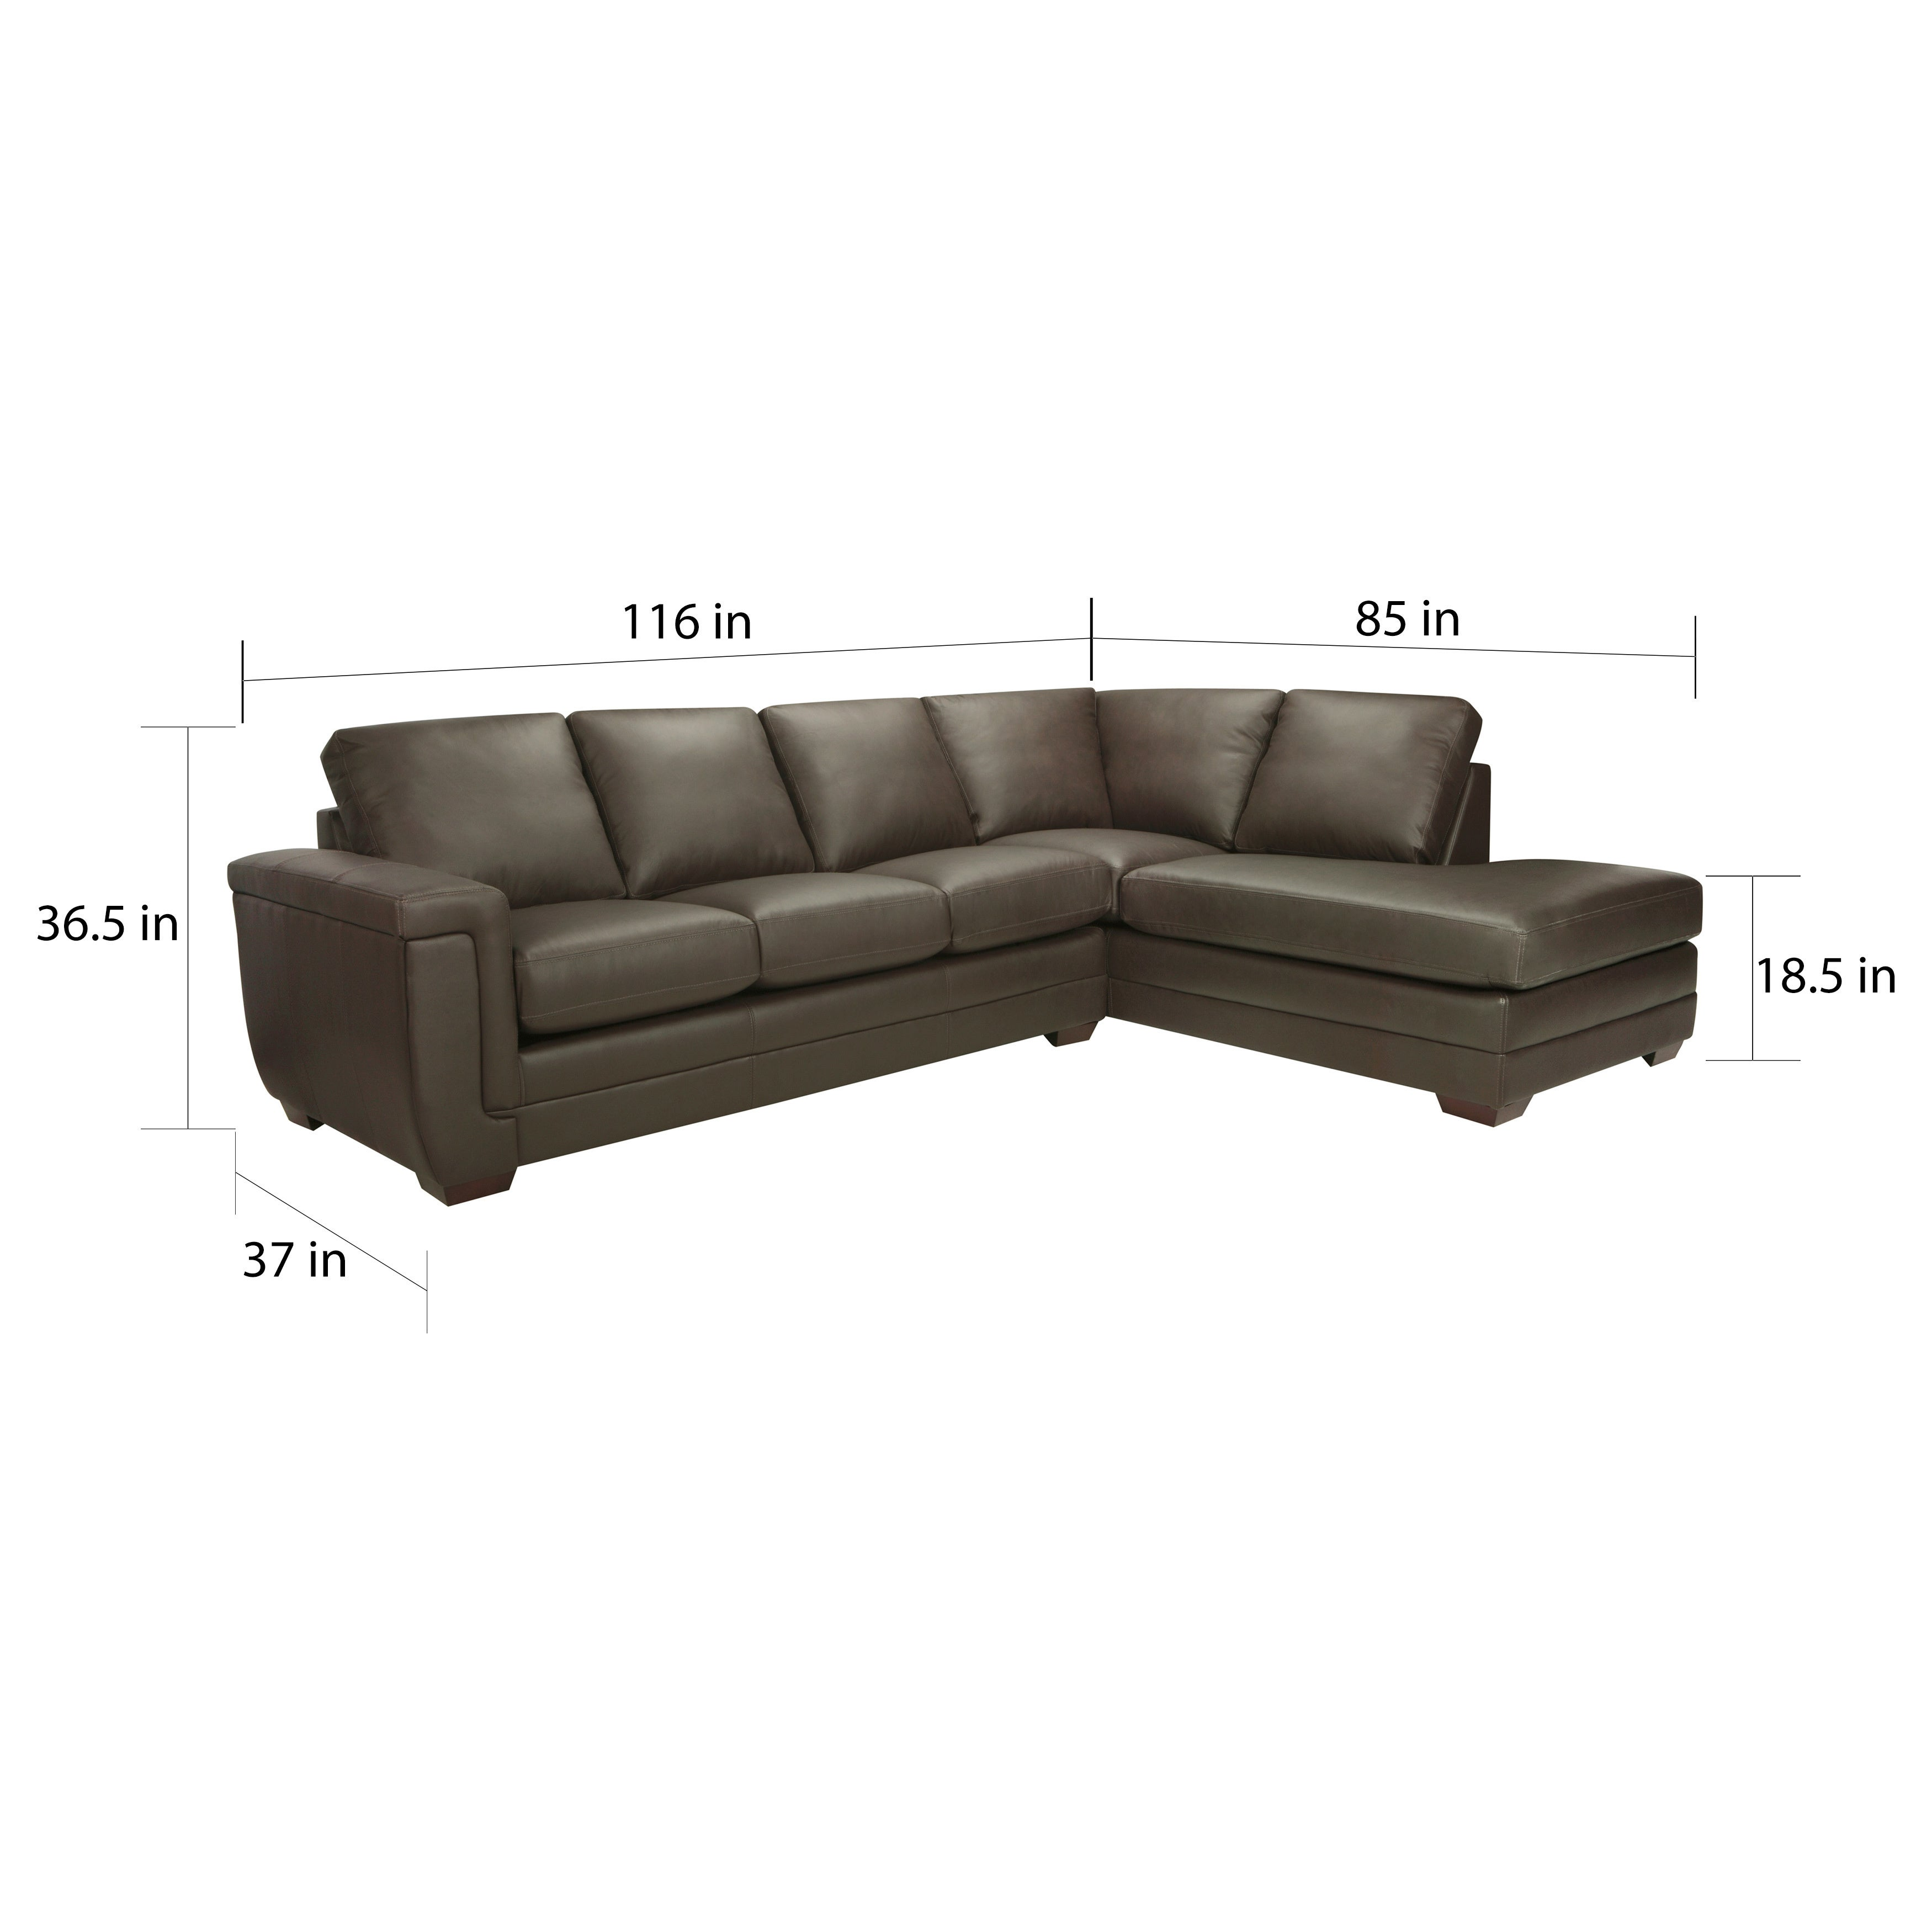 Shop porsche top grain italian leather sectional sofa on sale free shipping today overstock com 8093138